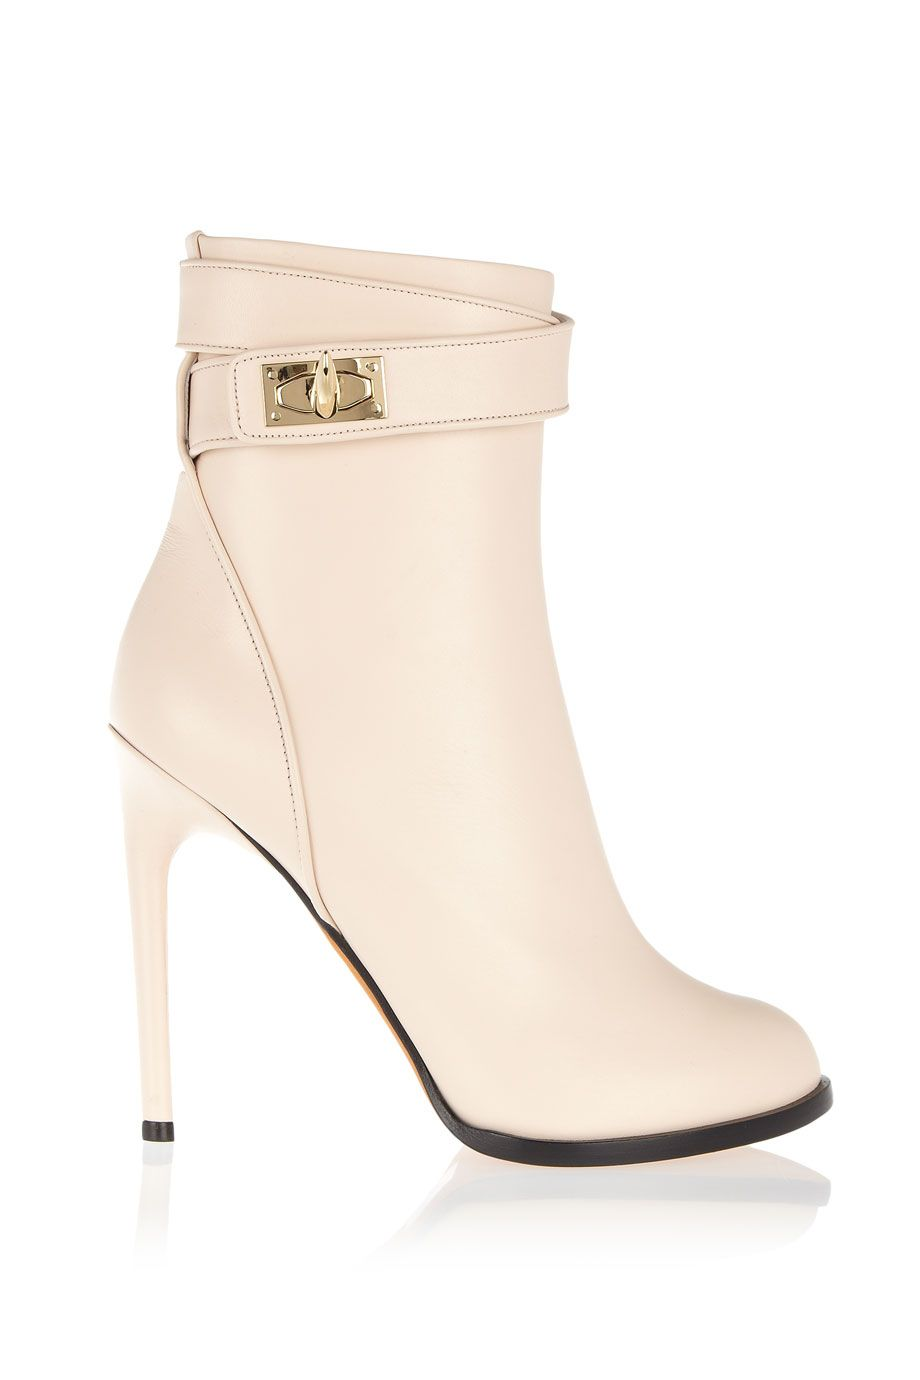 Givenchy|Shark Lock ankle boots in pale blush leather|NET-A-PORTER.COM